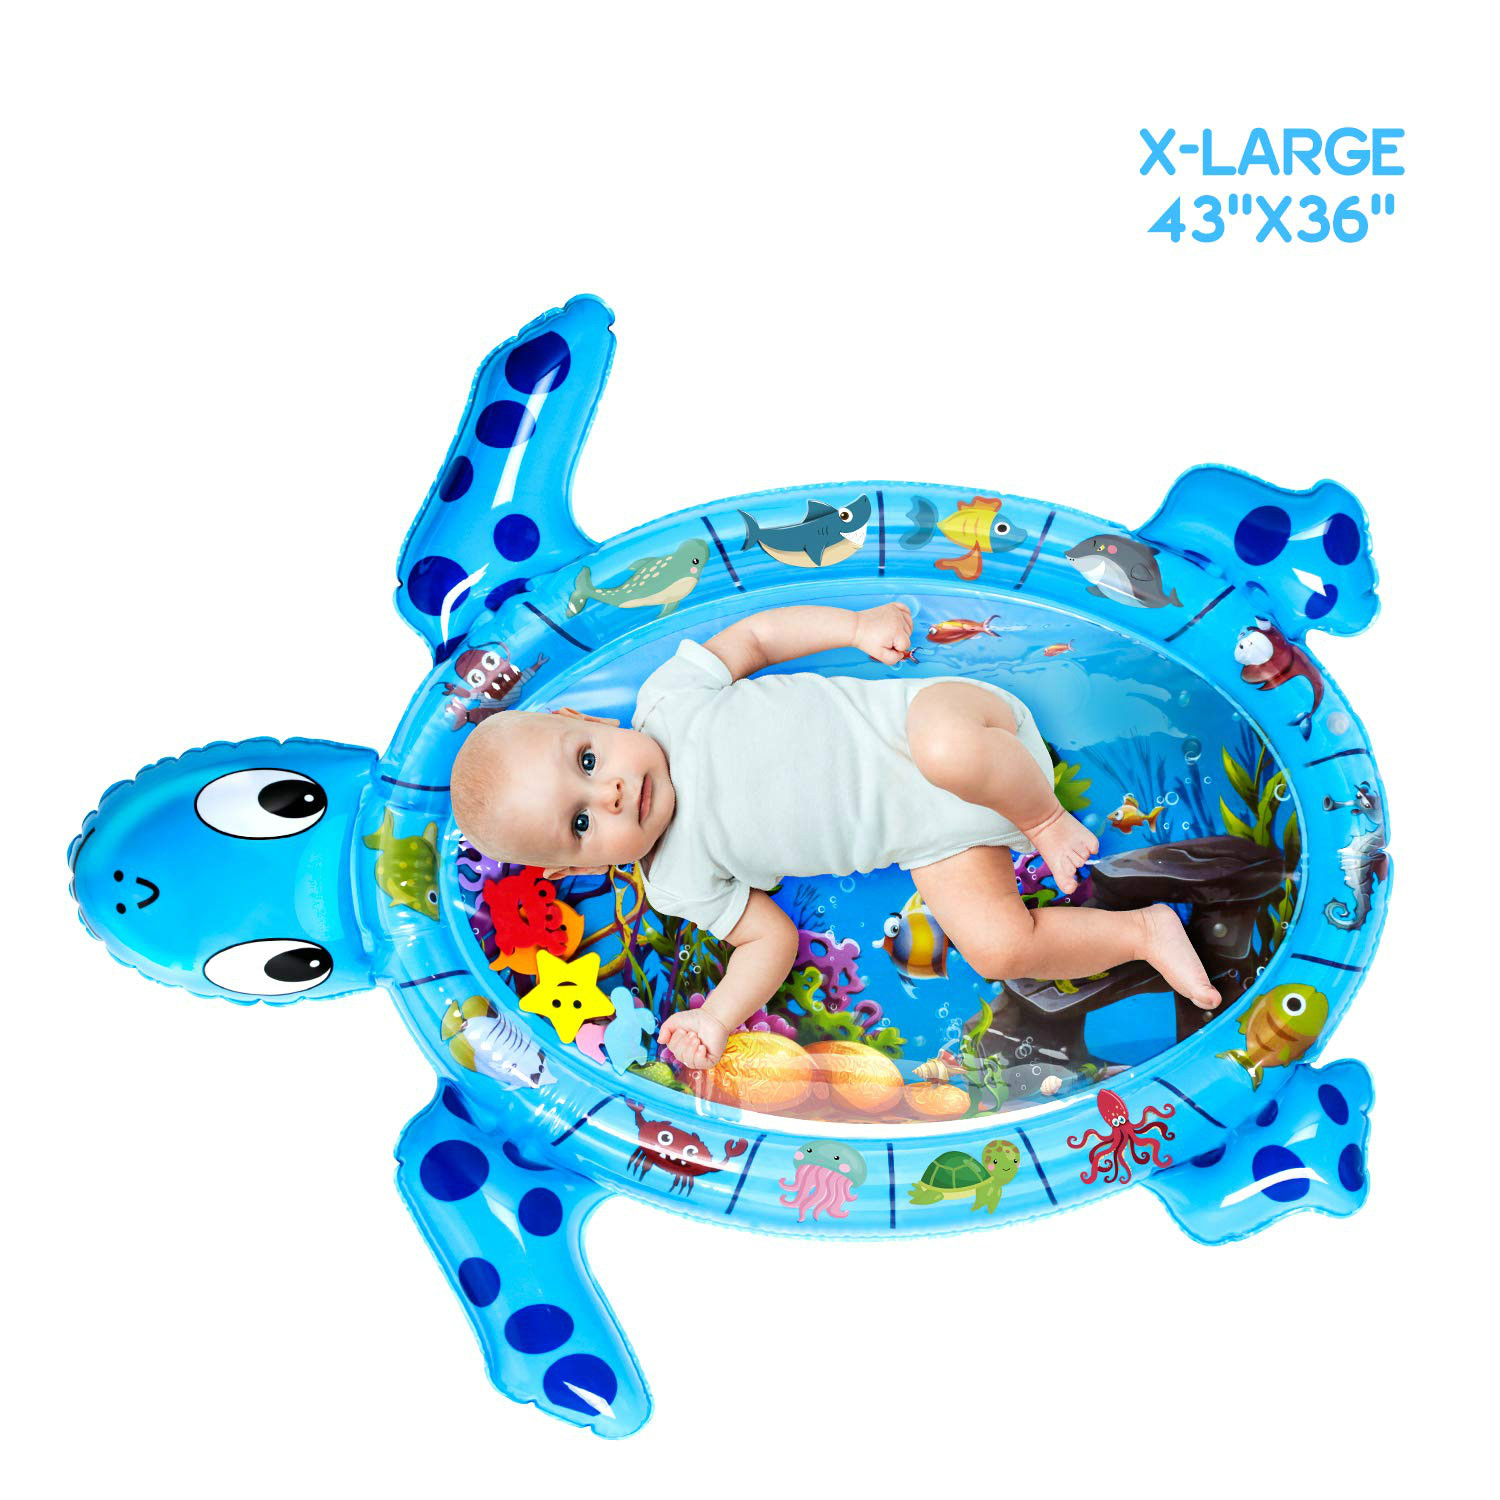 Tummy Time Mat With Wrist Rattles Set X-Large Inflatable Water Play Mat, Turtle Shape Newborn Baby Mat For 3 6 9 12 Months